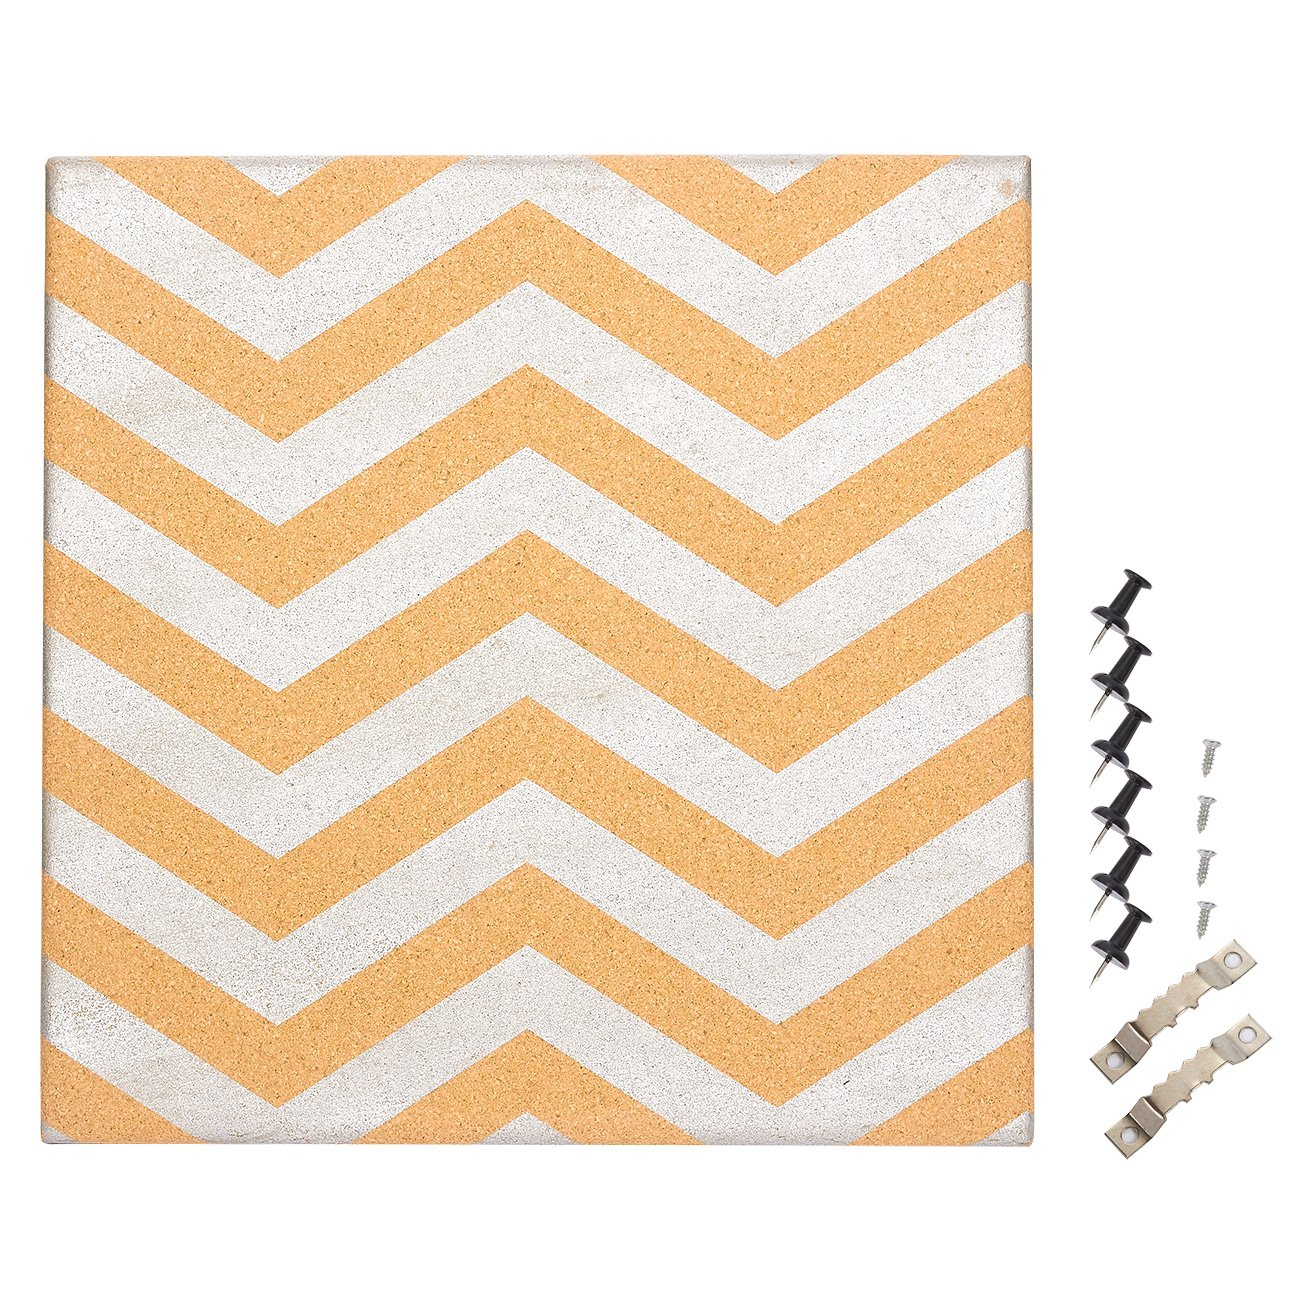 Cork Bulletin Board - Decorative Wall DecorCorkboard with Silver Chevron Design, 6 Push Pins Included for Pinning Memos and Reminders, 15.7 x 15.7 x 0.7 inches